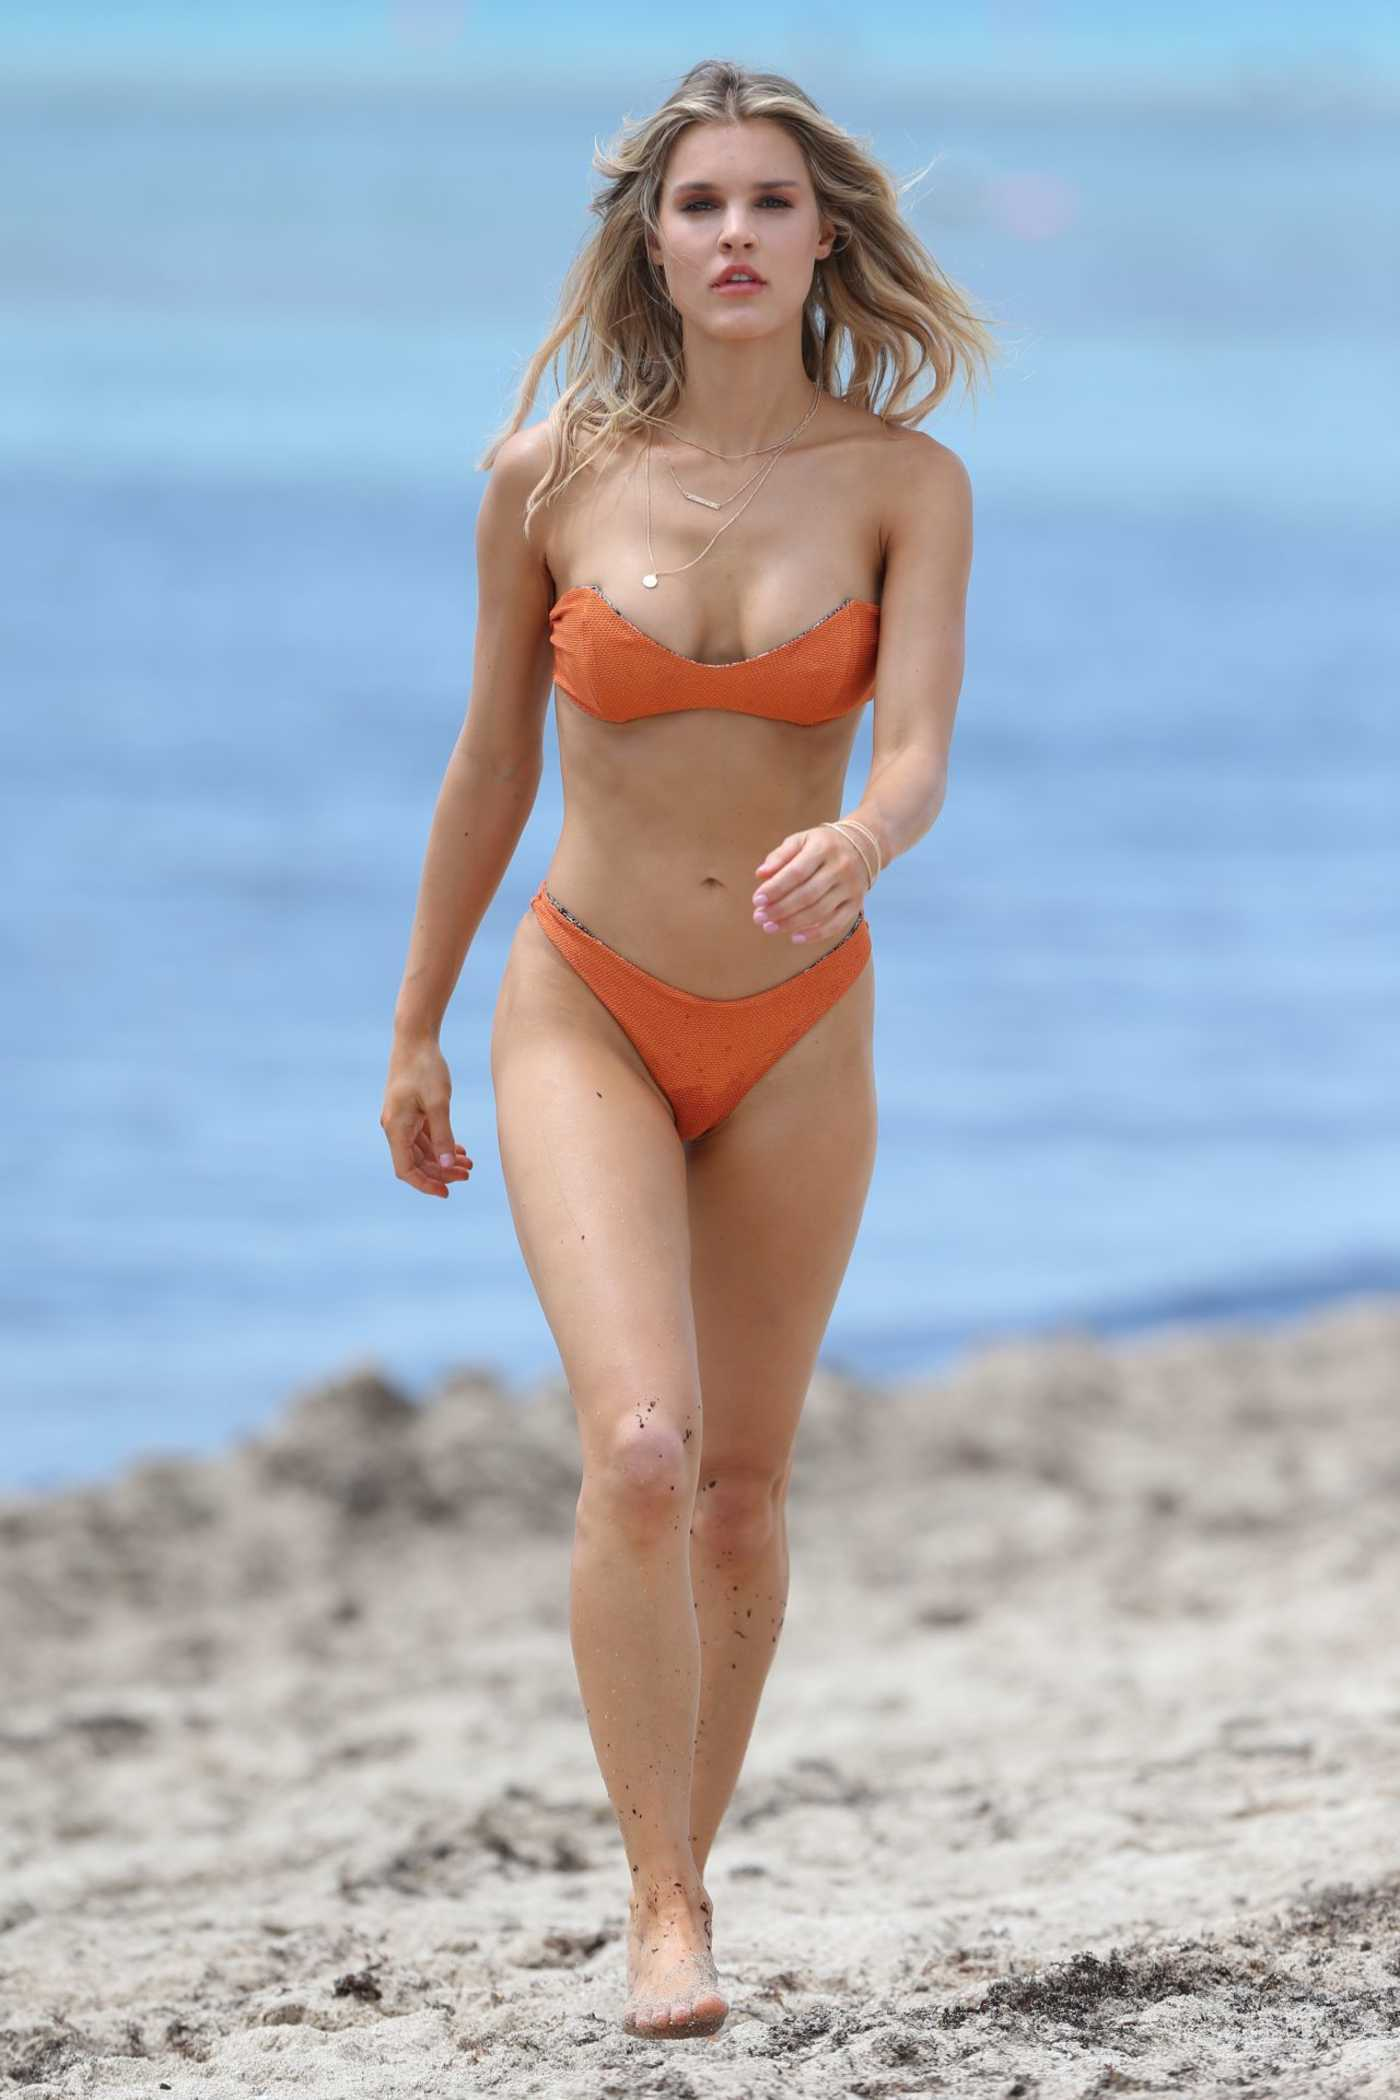 Joy Corrigan Does a Bikini Photoshoot on the Beach in Miami 06/22/2018